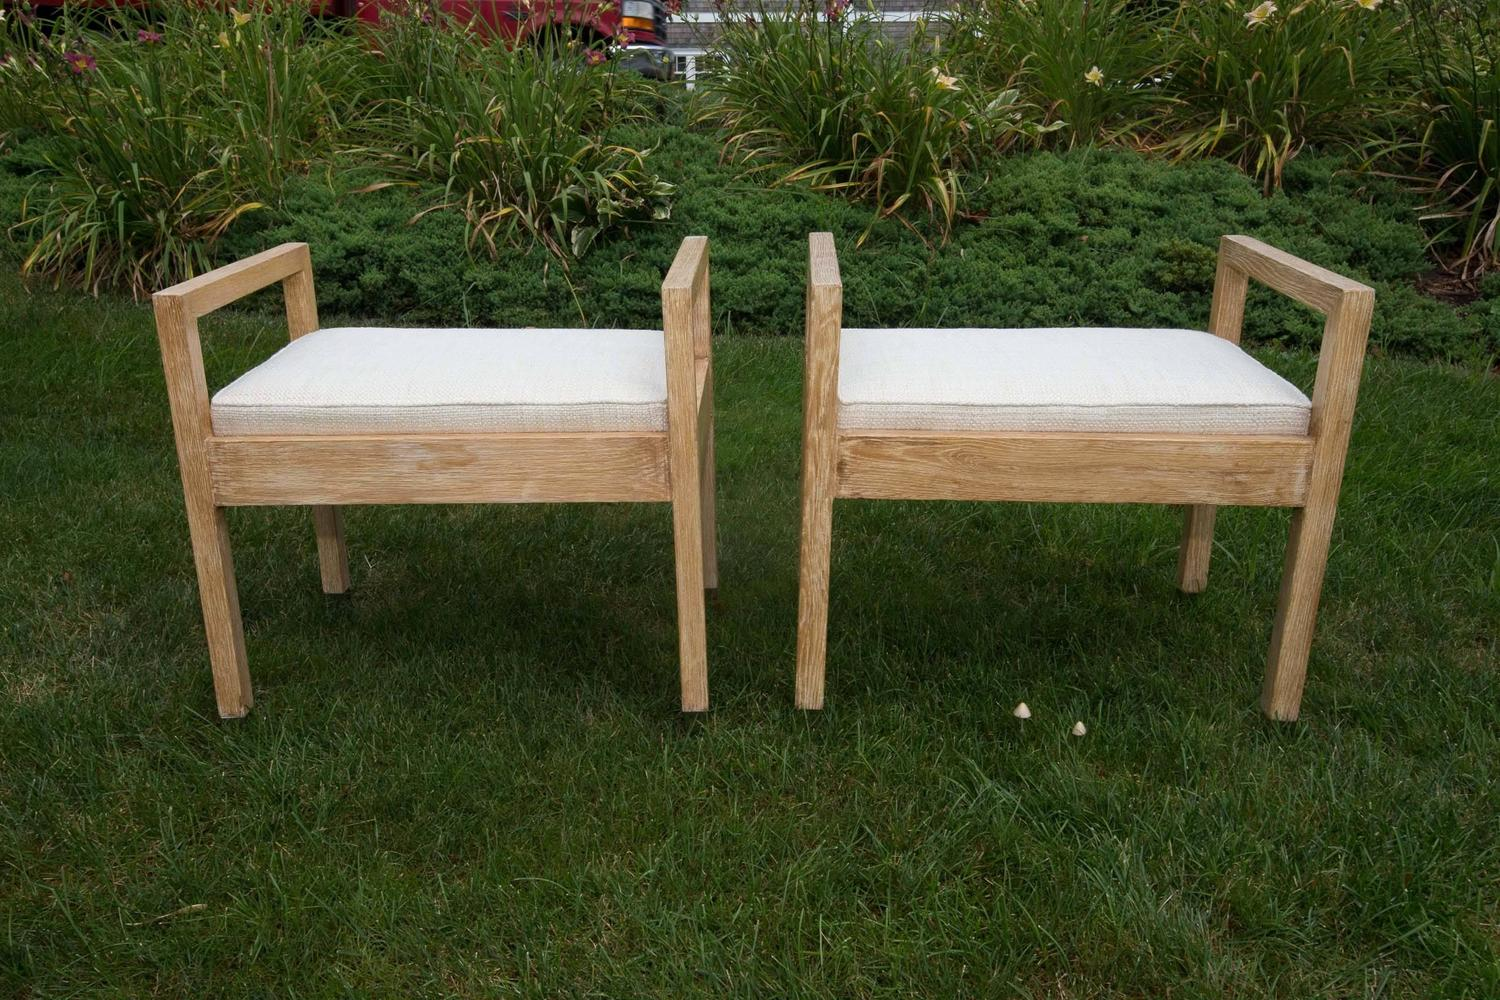 Pair Of Upholstered Wood Benches With Chrome Tip Legs For Sale At . Full resolution‎  image, nominally Width 1500 Height 1000 pixels, image with #2C3816.